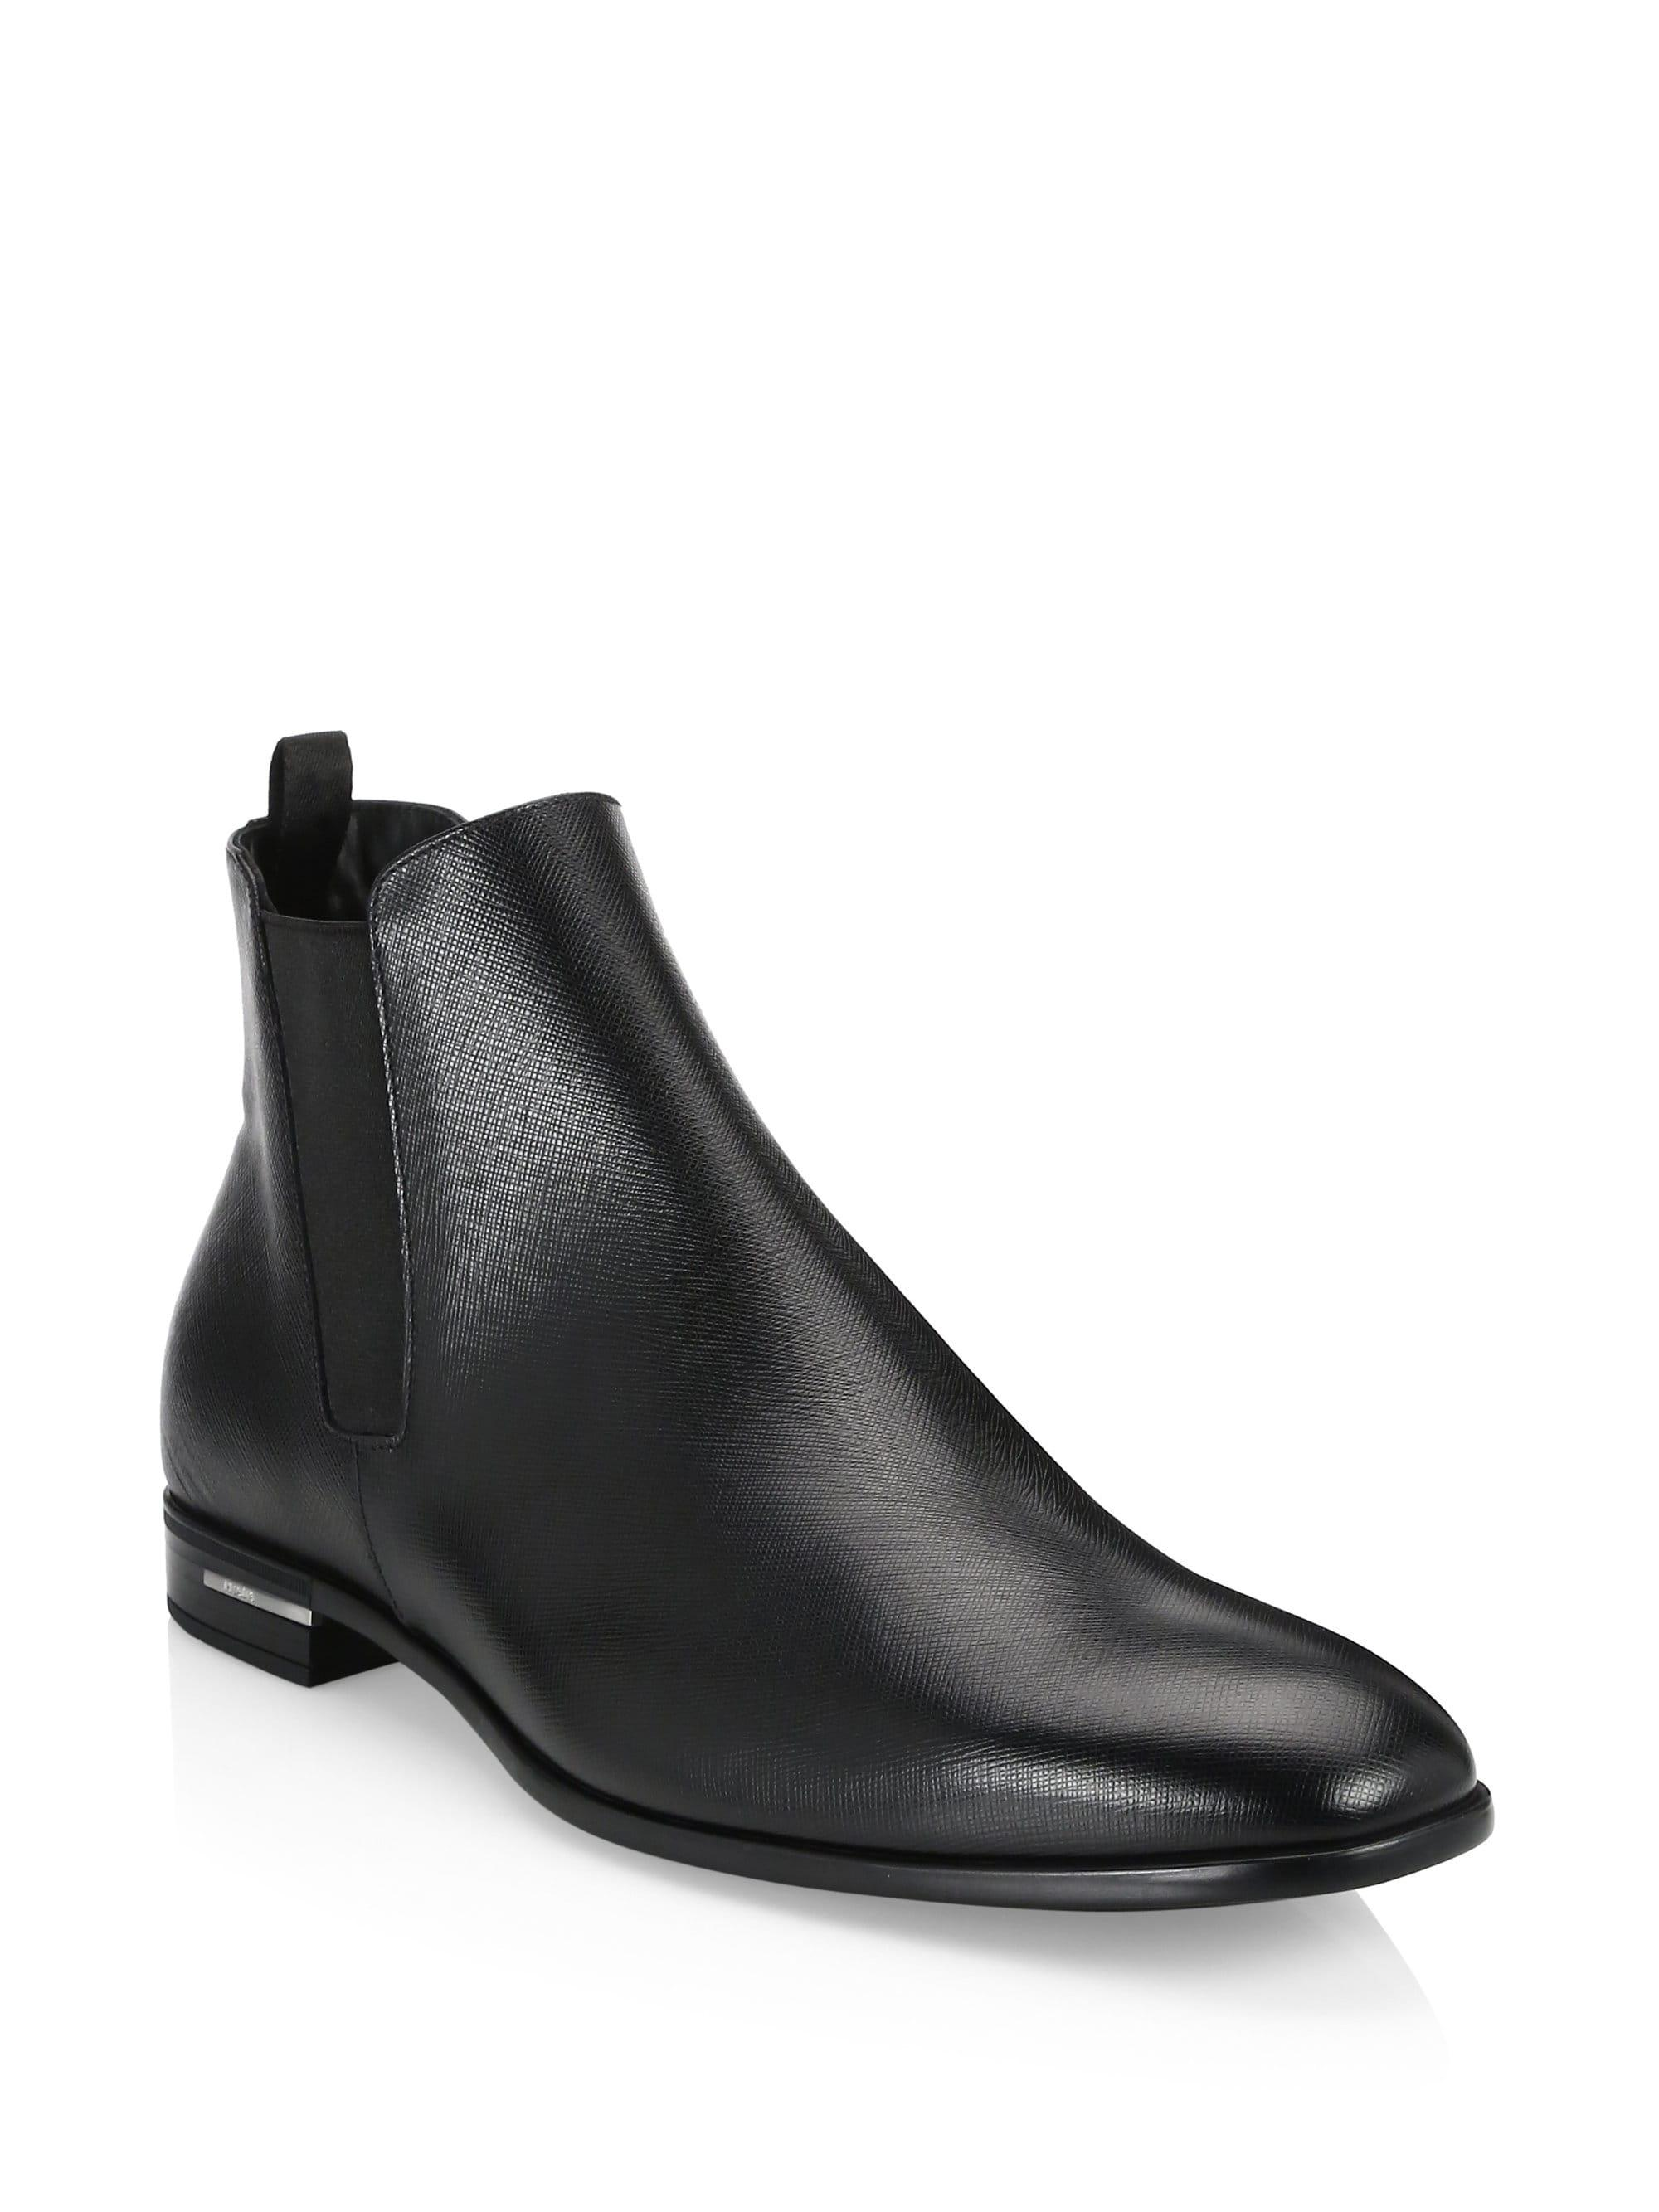 2e1244f5c375 Lyst - Prada Leather Chelsea Boots in Black for Men